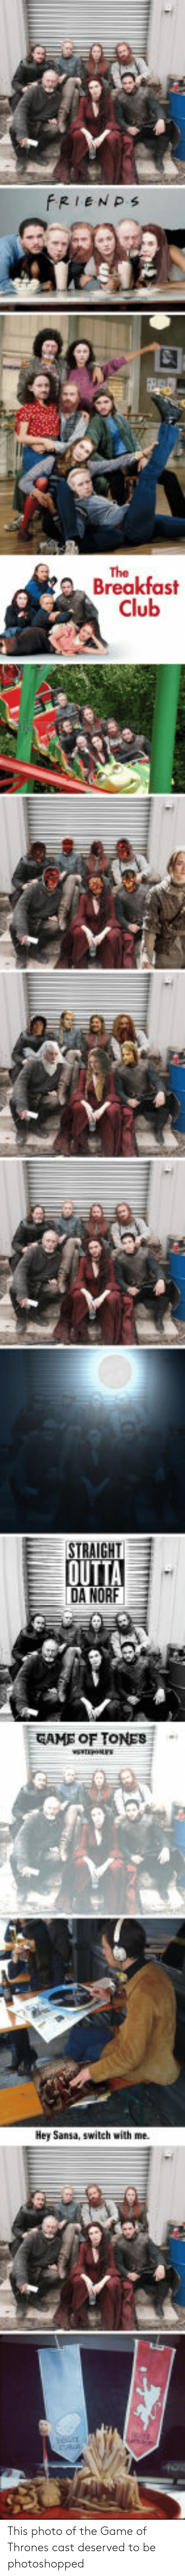 The Breakfast Club: FRIENPs  The  Breakfast  Club  STRAIGHT  DA NORF  GAME OF TONES  Hey Sansa, switch with me. This photo of the Game of Thrones cast deserved to be photoshopped